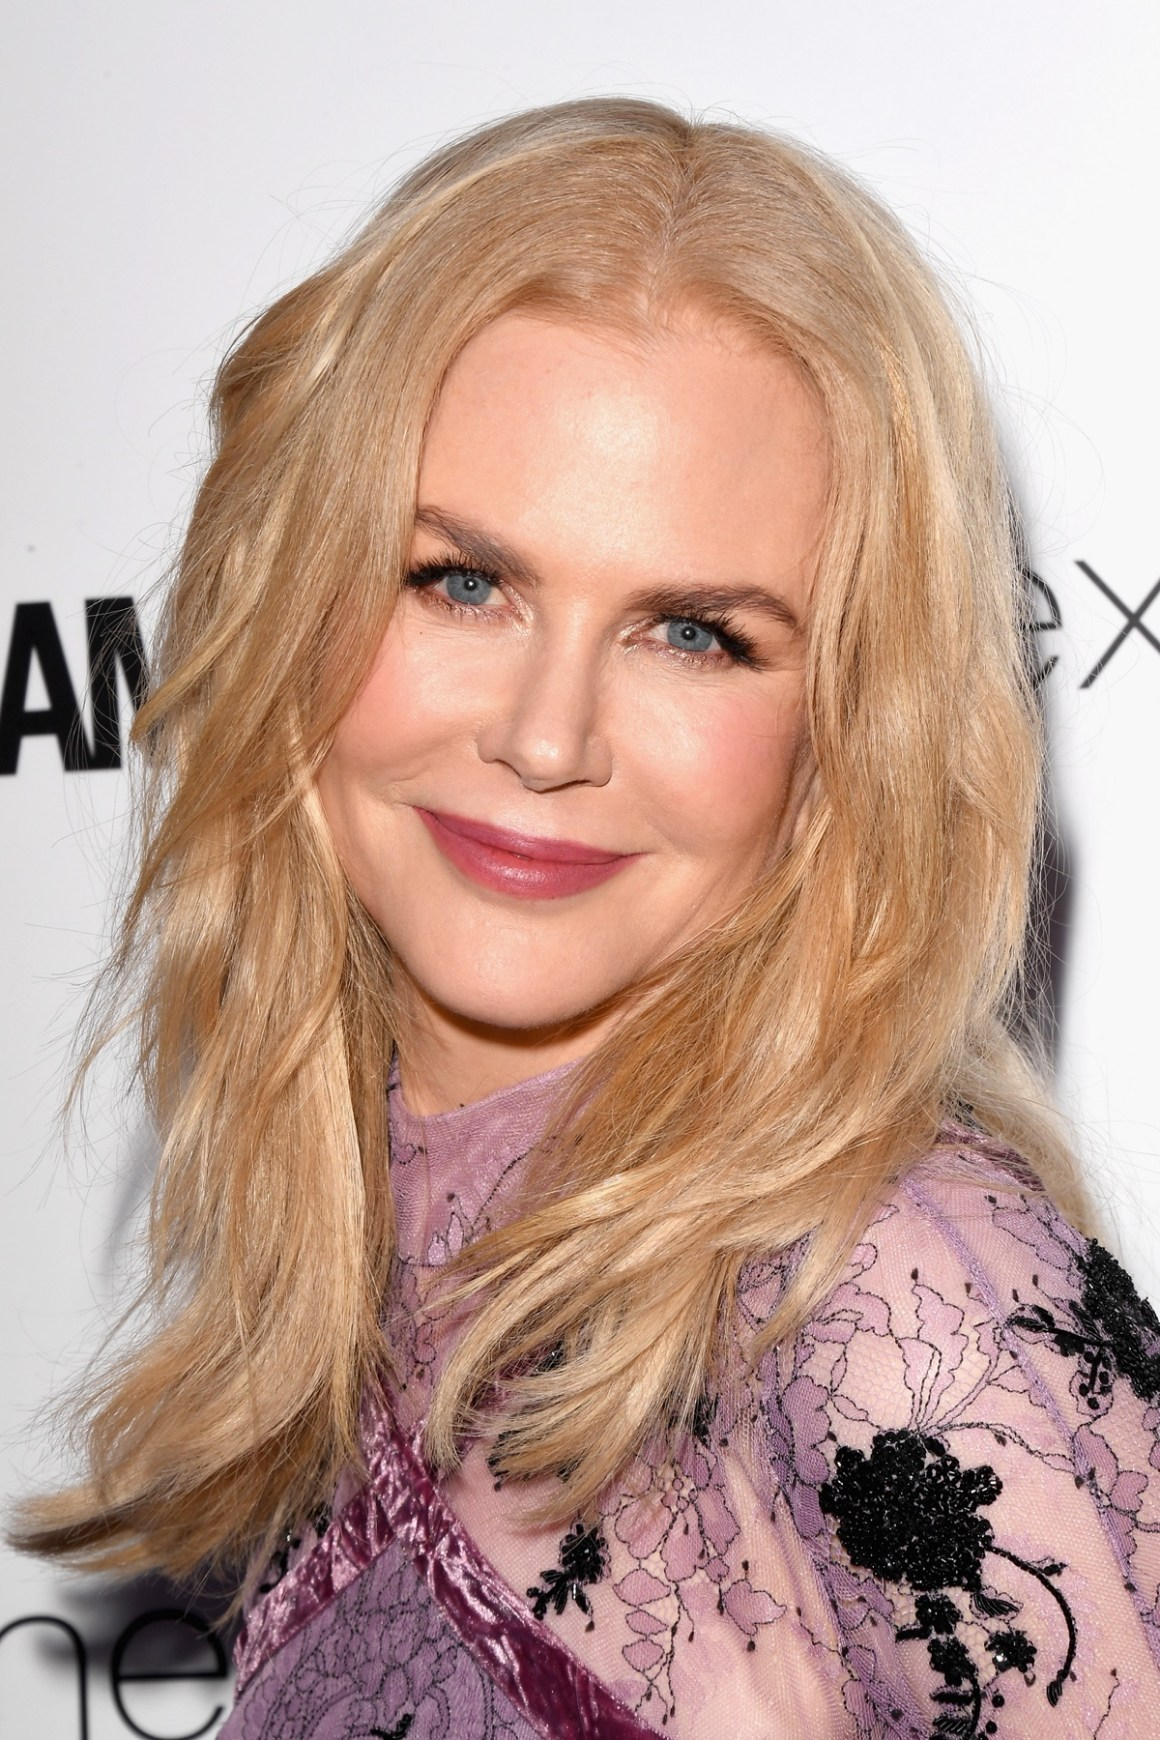 Nicole Kidman Glamour Women Of The Year Awards 2017 - Red Carpet Arrivals